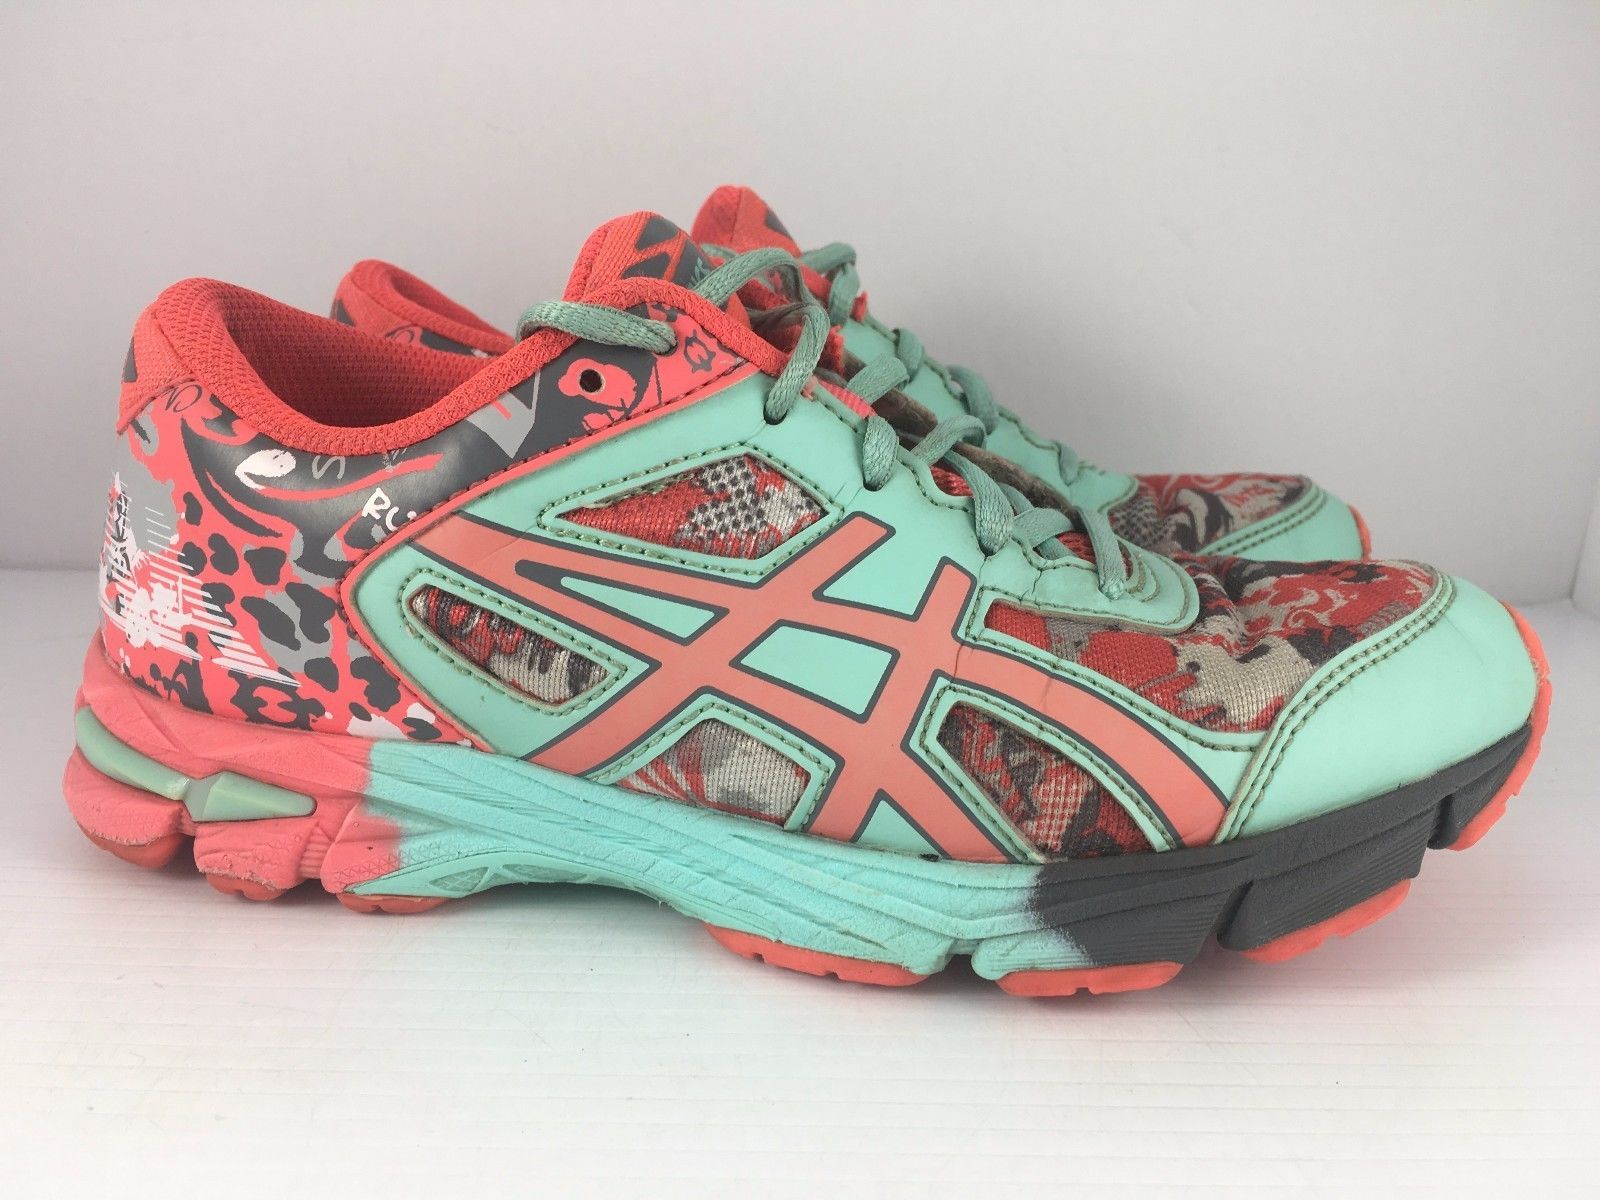 Asics 1 Noosa Chaussures 13831 de course: Chaussures 1 inscription c37f68a - dhsocialbookmrking.website